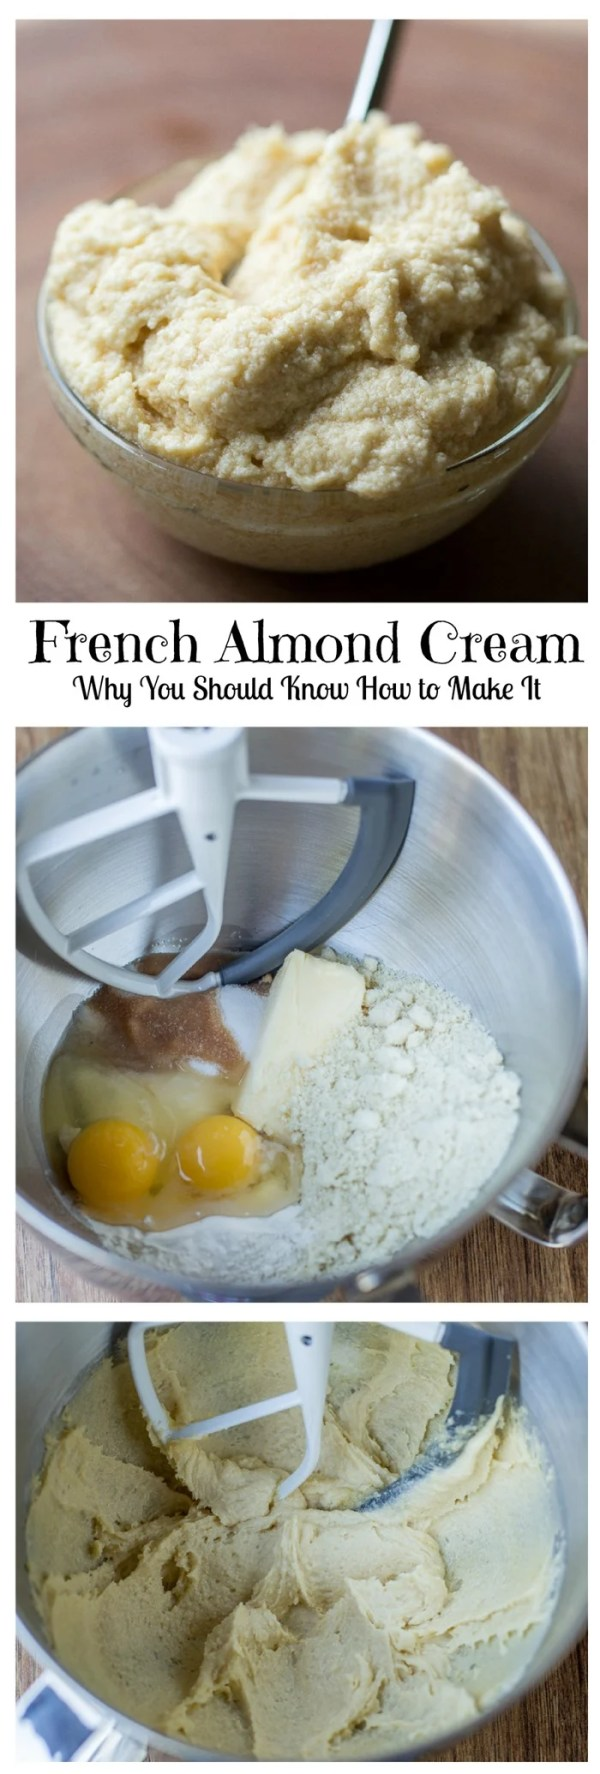 Quick & Easy French Almond Cream - just add ingredients to the bowl & Whisk. Great for filling Pastries, Tarts, Croissants & Toast. by Let the Baking Begin!